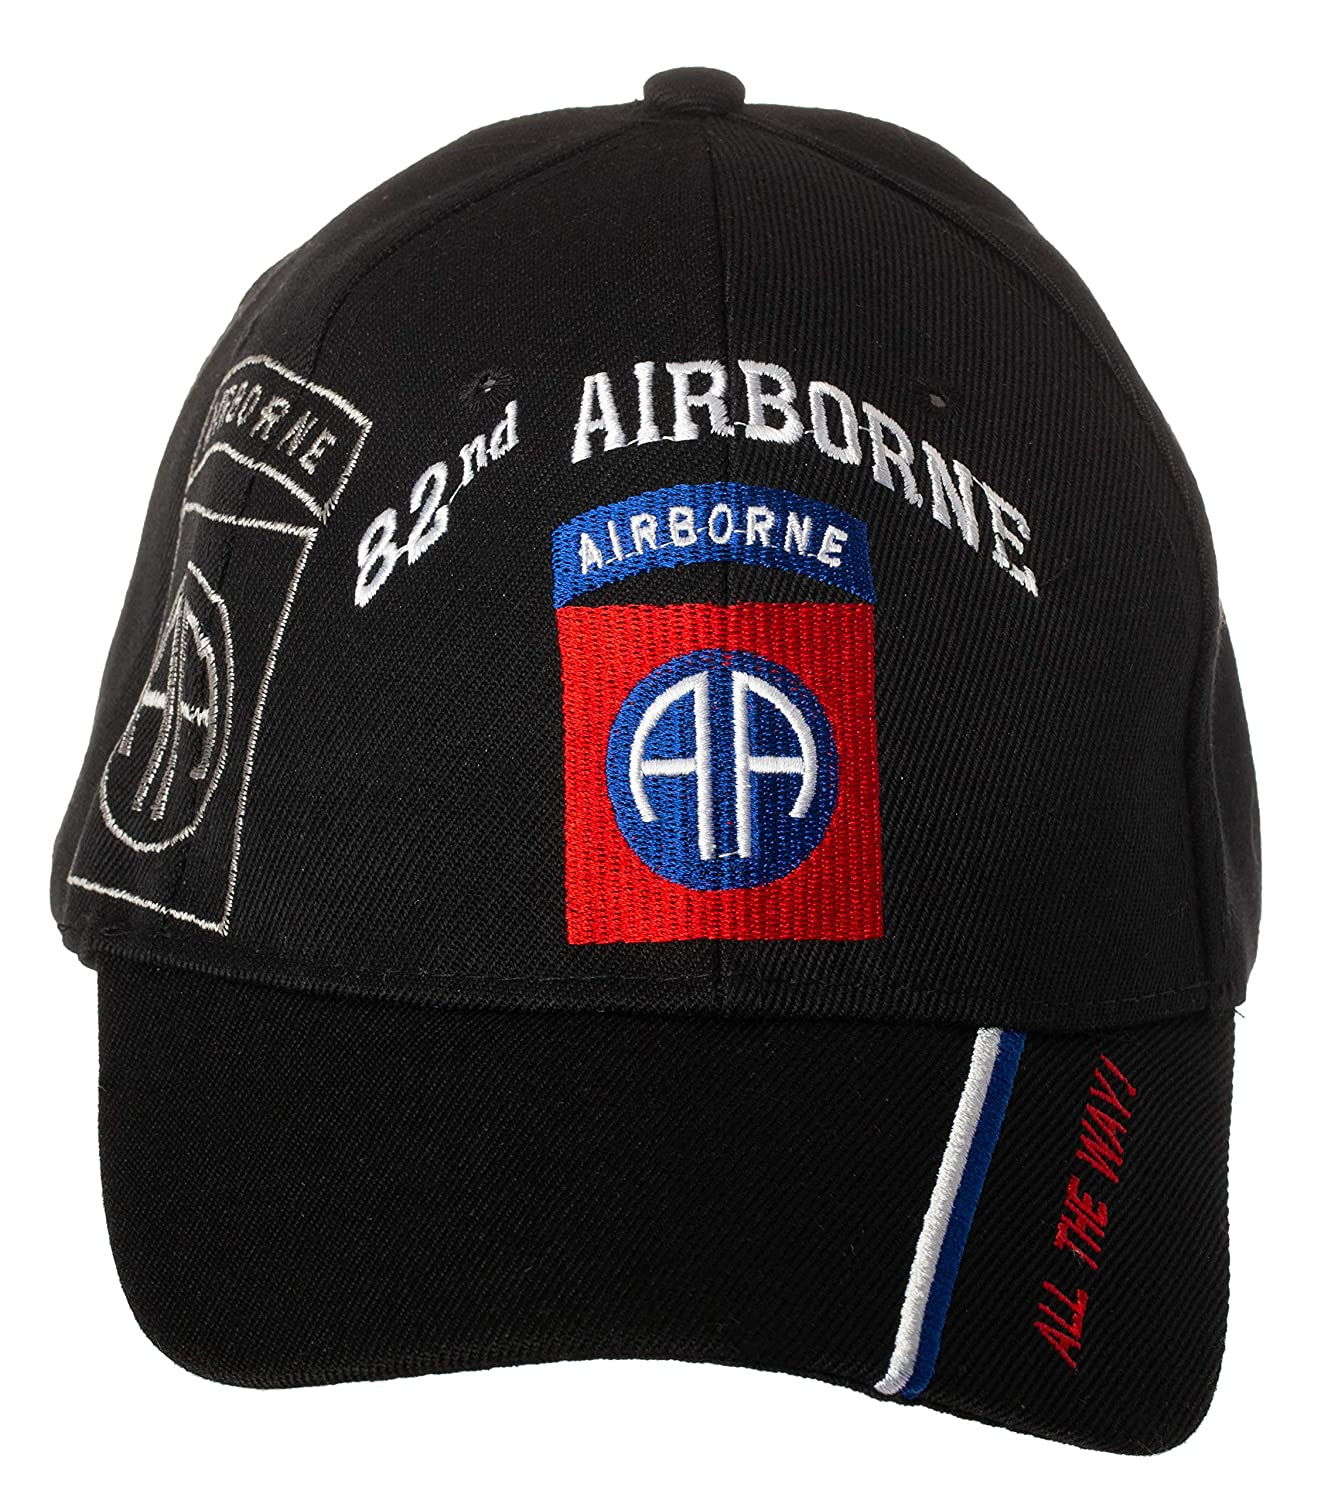 Artisan Owl Officially Licensed US Army 82nd Airborne Division All The Way!  Embroidered Adjustable Baseball Cap (Black) at Amazon Men s Clothing store  4ab13bdfe77